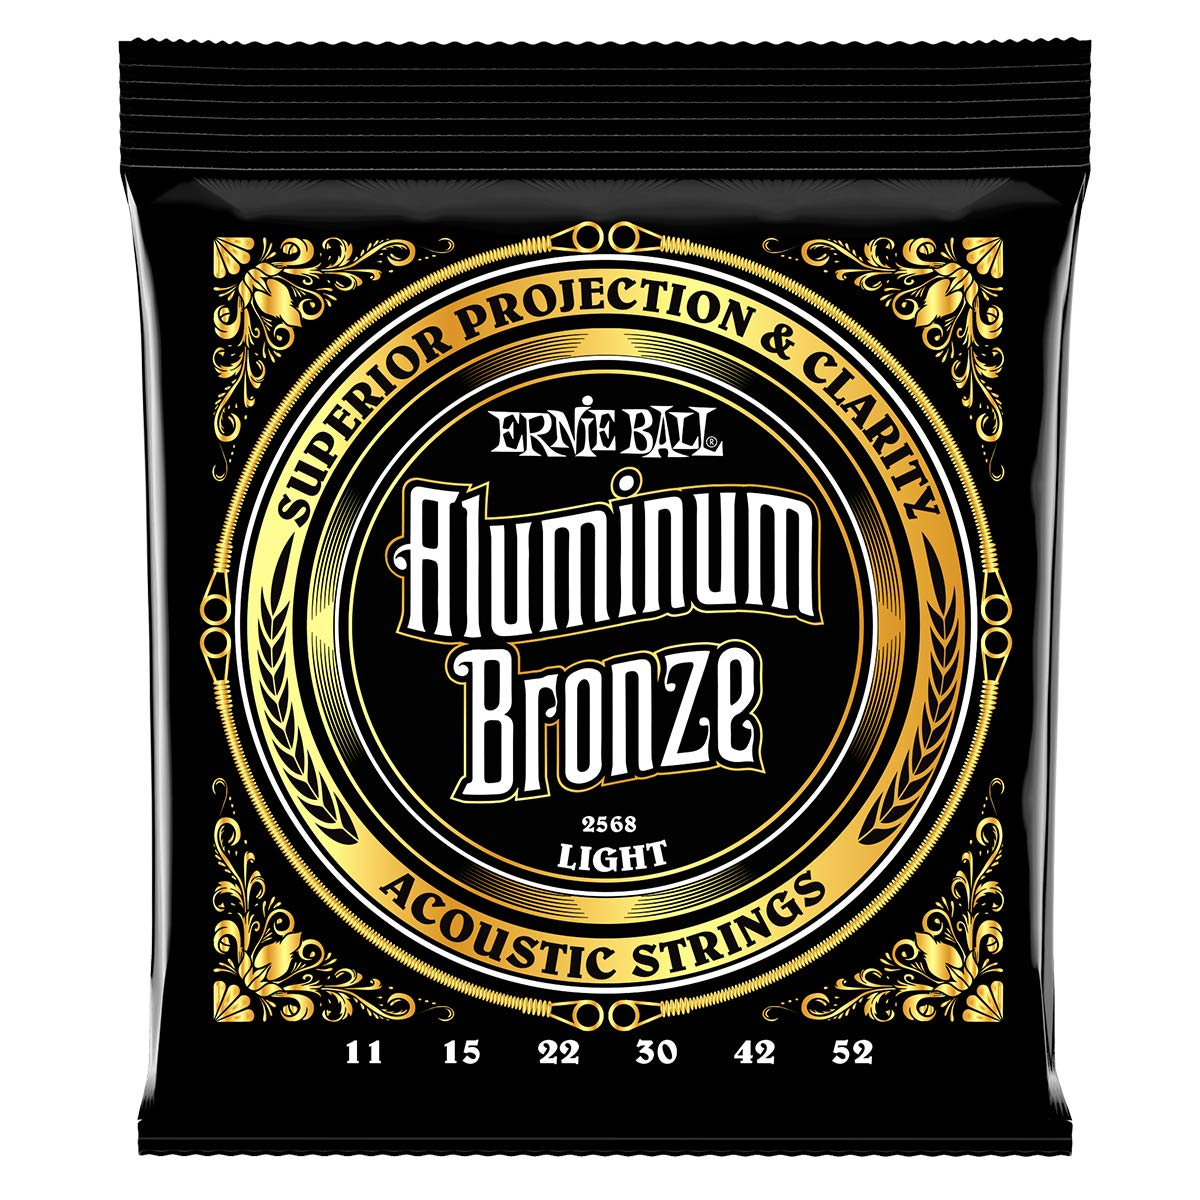 Ernie Ball Aluminium Bronze Acoustic Guitar Strings online price in india